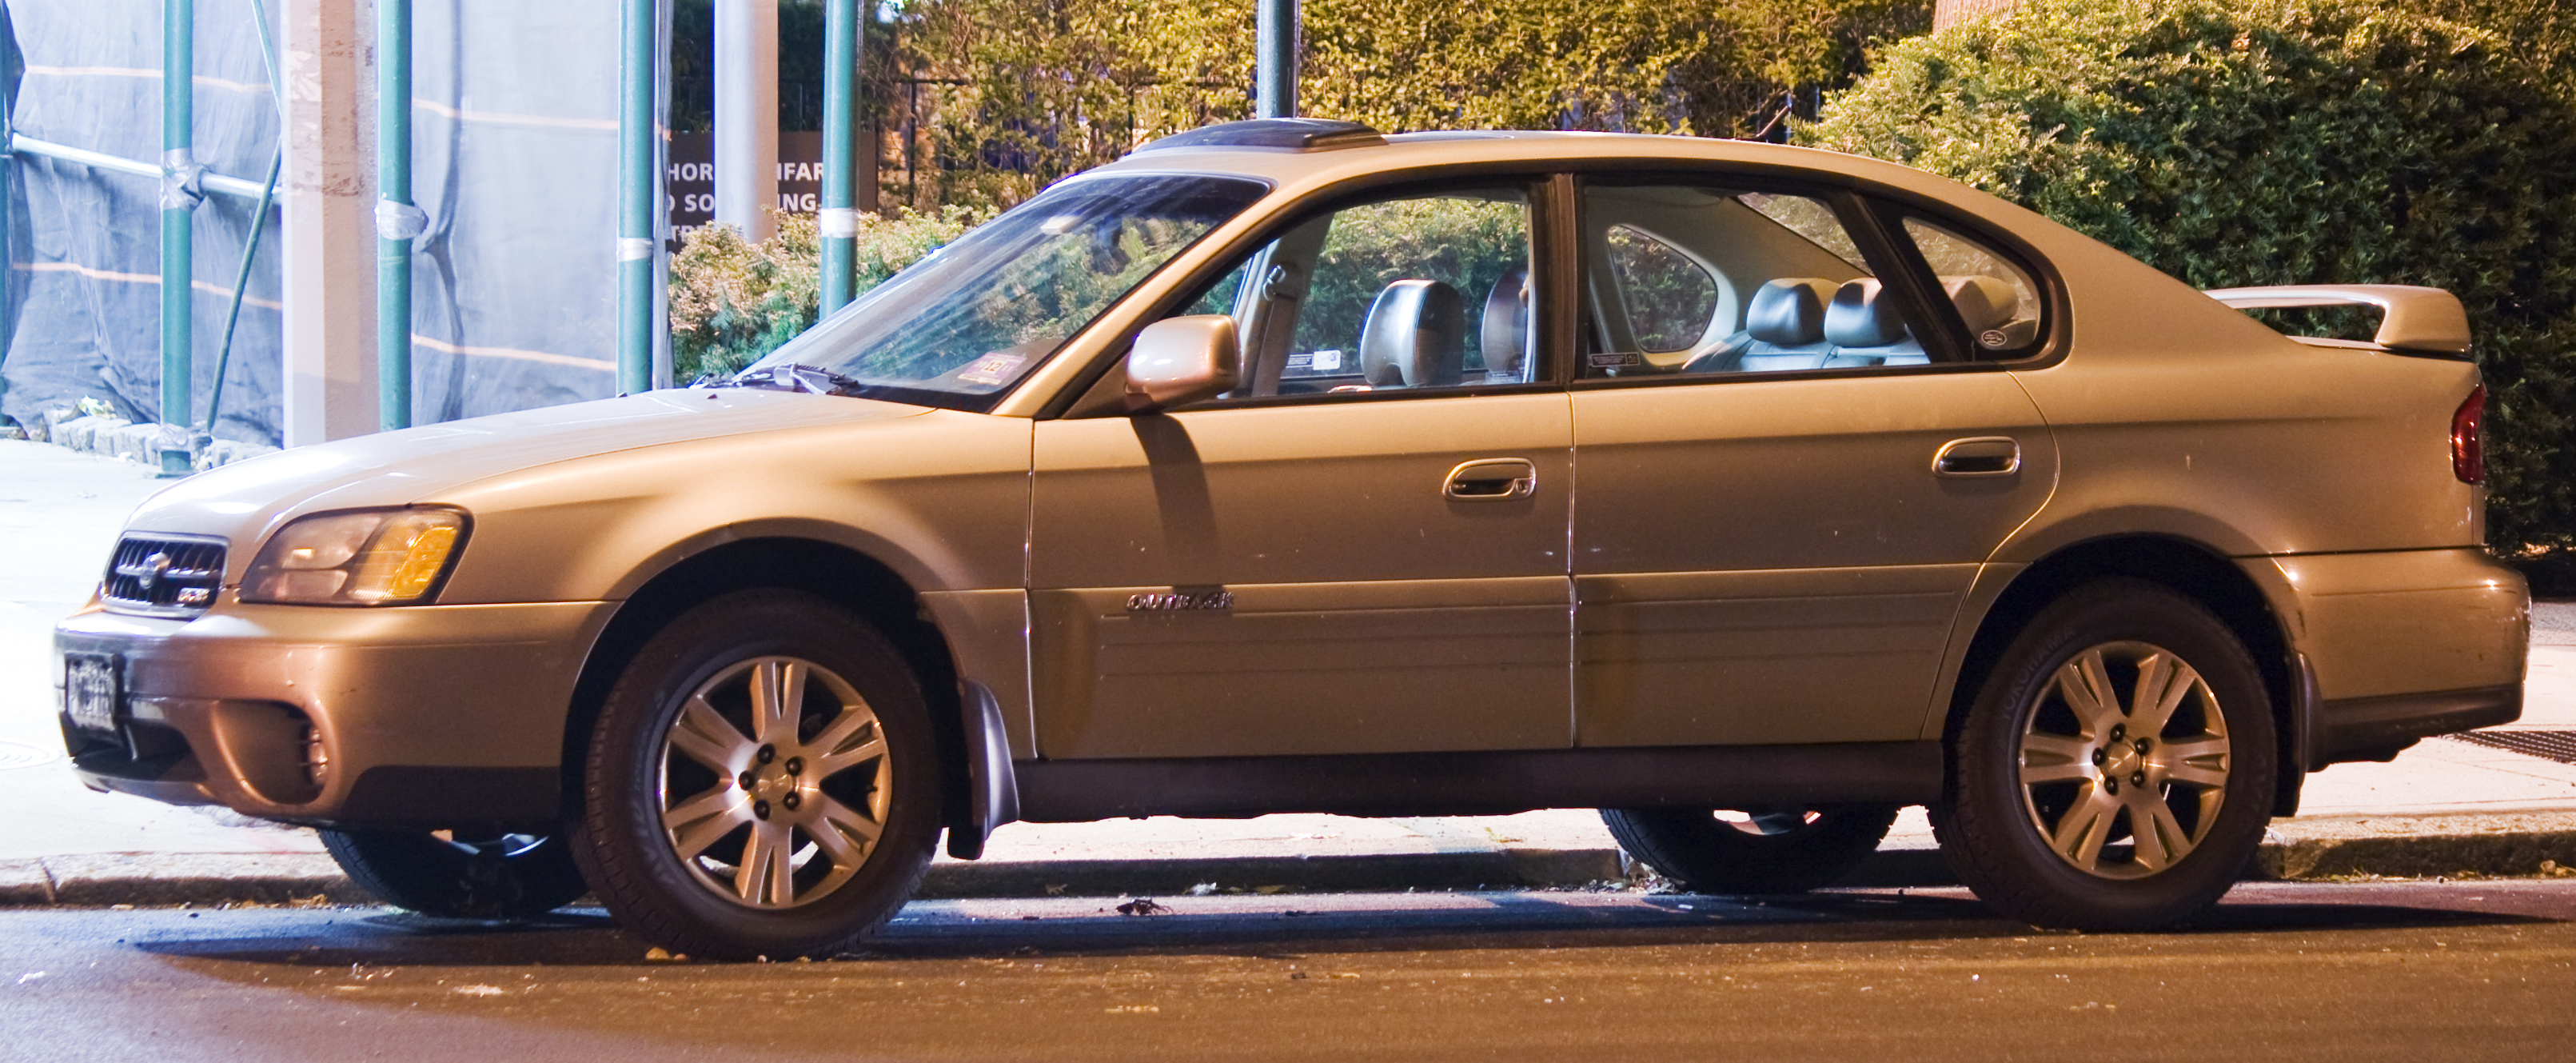 Custom Subaru Outback >> File:Subaru Outback Sedan H6-3.0.jpg - Wikimedia Commons